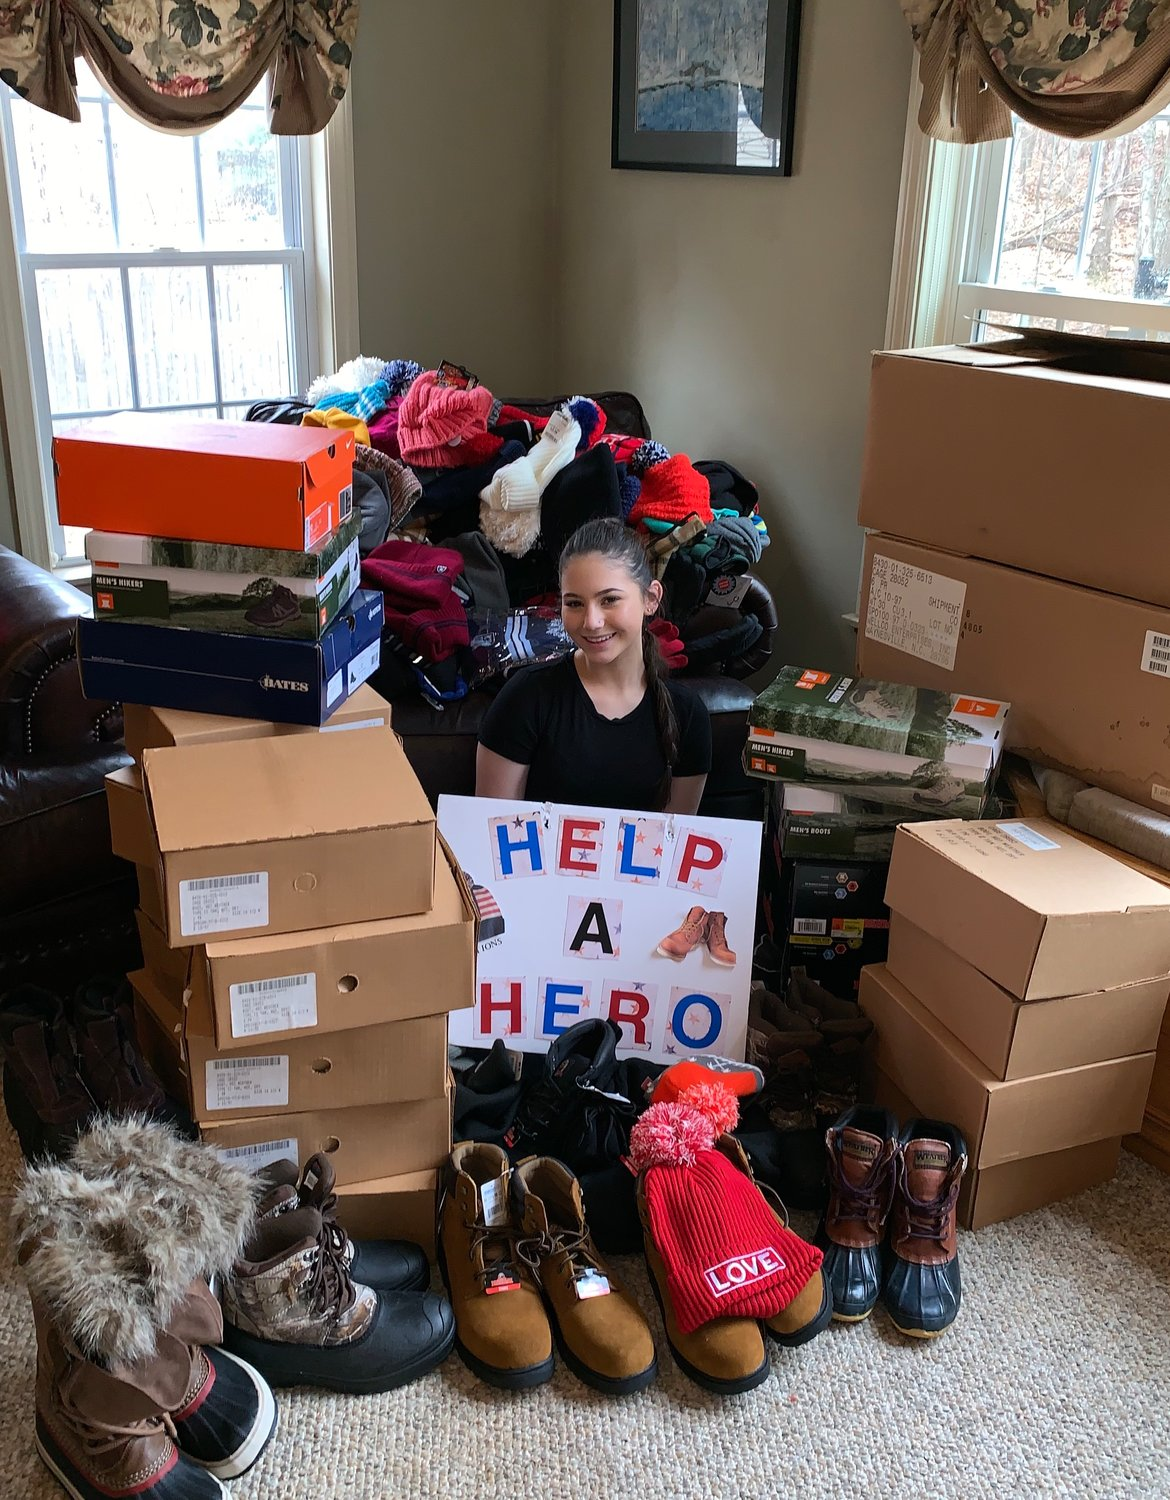 BOOTS ON THE GROUND: Ava Librizzi, a Warwick native and St. Raphael Academy junior, is eclipsed by a massive pile of donated boots and hats, amounting to over $8,000 of product in about three months of seeking donations.